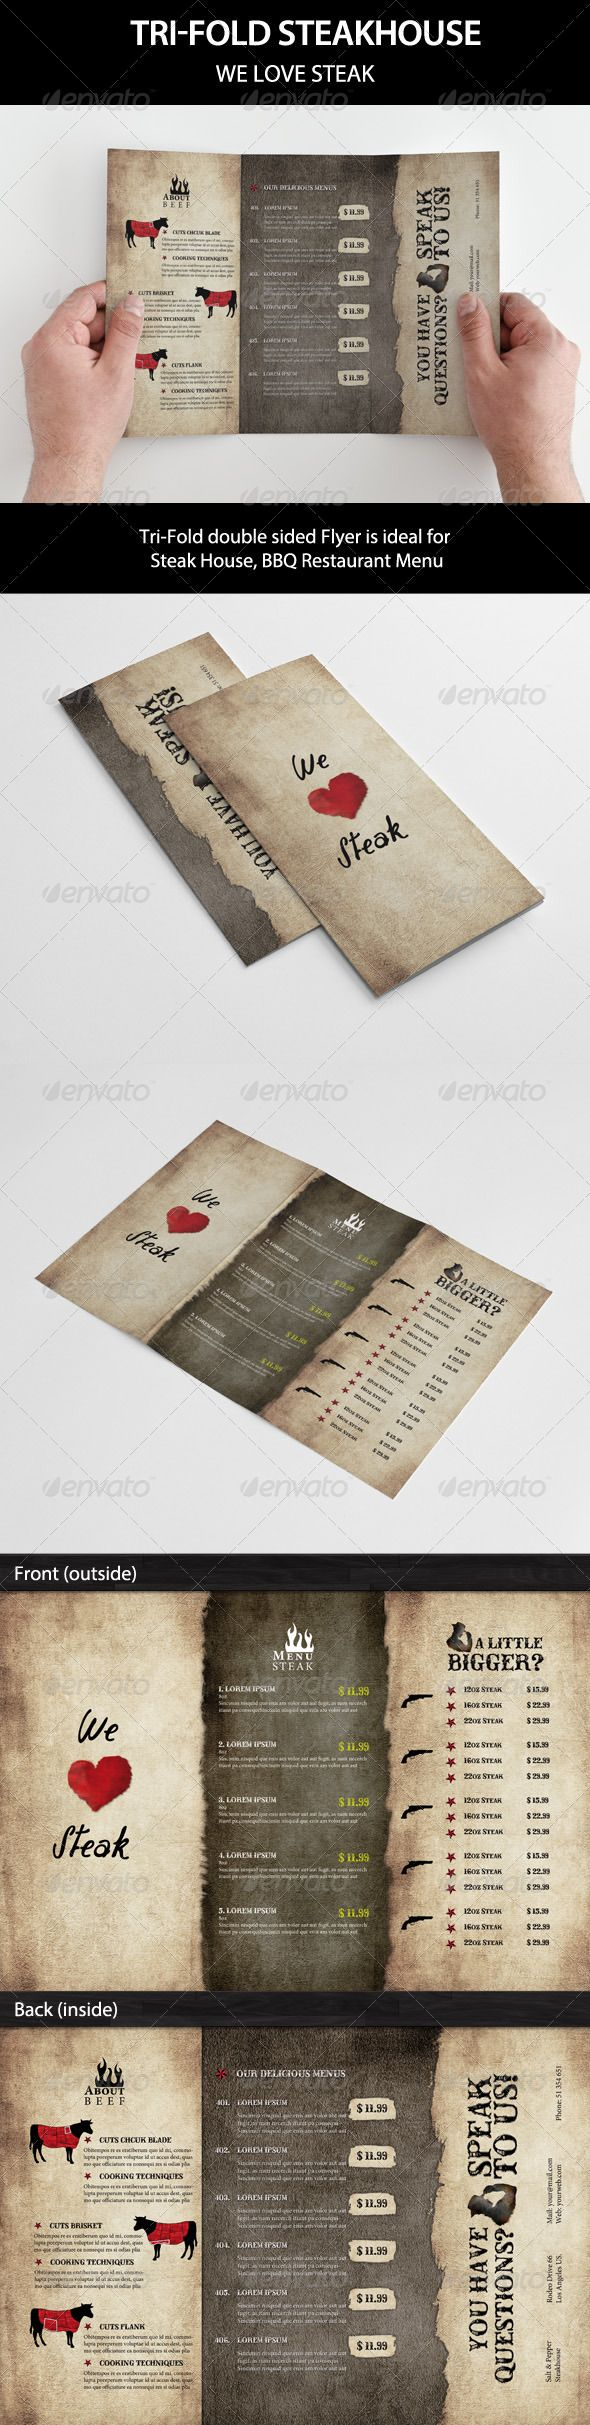 Tri-Fold BBQ Steakhouse and beef #GraphicRiver This Tri-Fold double sided Flyer is ideal for a Steak House or BBQ Restaurant Menu. Eeasy to personalize! Just replace placeholders with your images, change descriptions & prices.